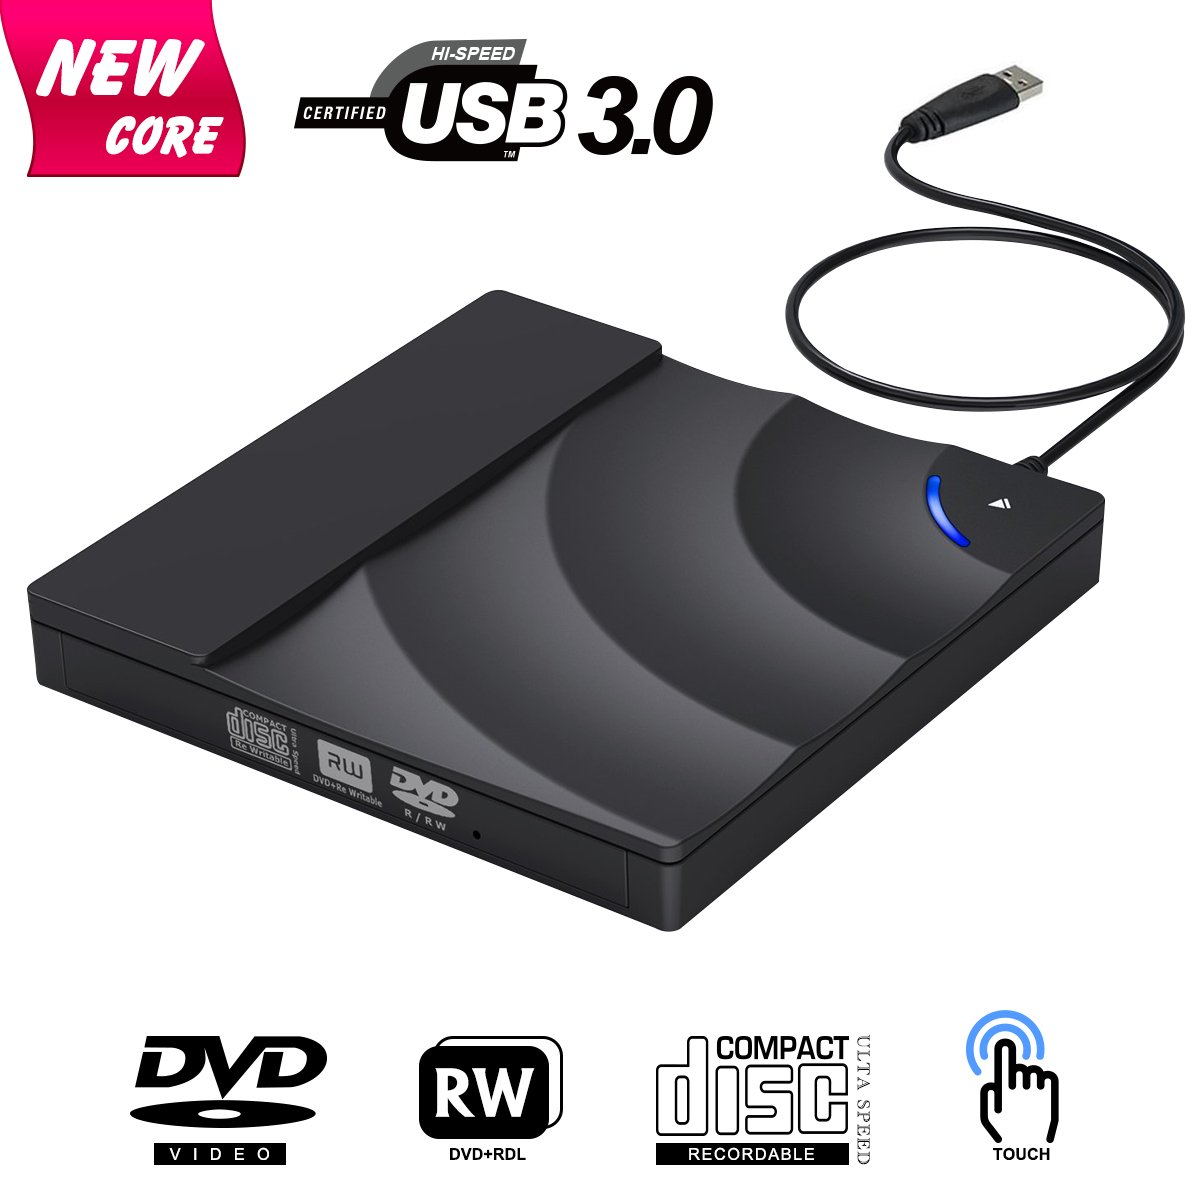 External CD Drive, BOSLISA Touch Control USB 3.0 CD/DVD+/-RW Burner Player, Optical Superdrive High Speed Data Transfer for Laptop MacBook Desktop Computer Compatable for Windows10 /8/7/XP/Mac OS by BOSLISA